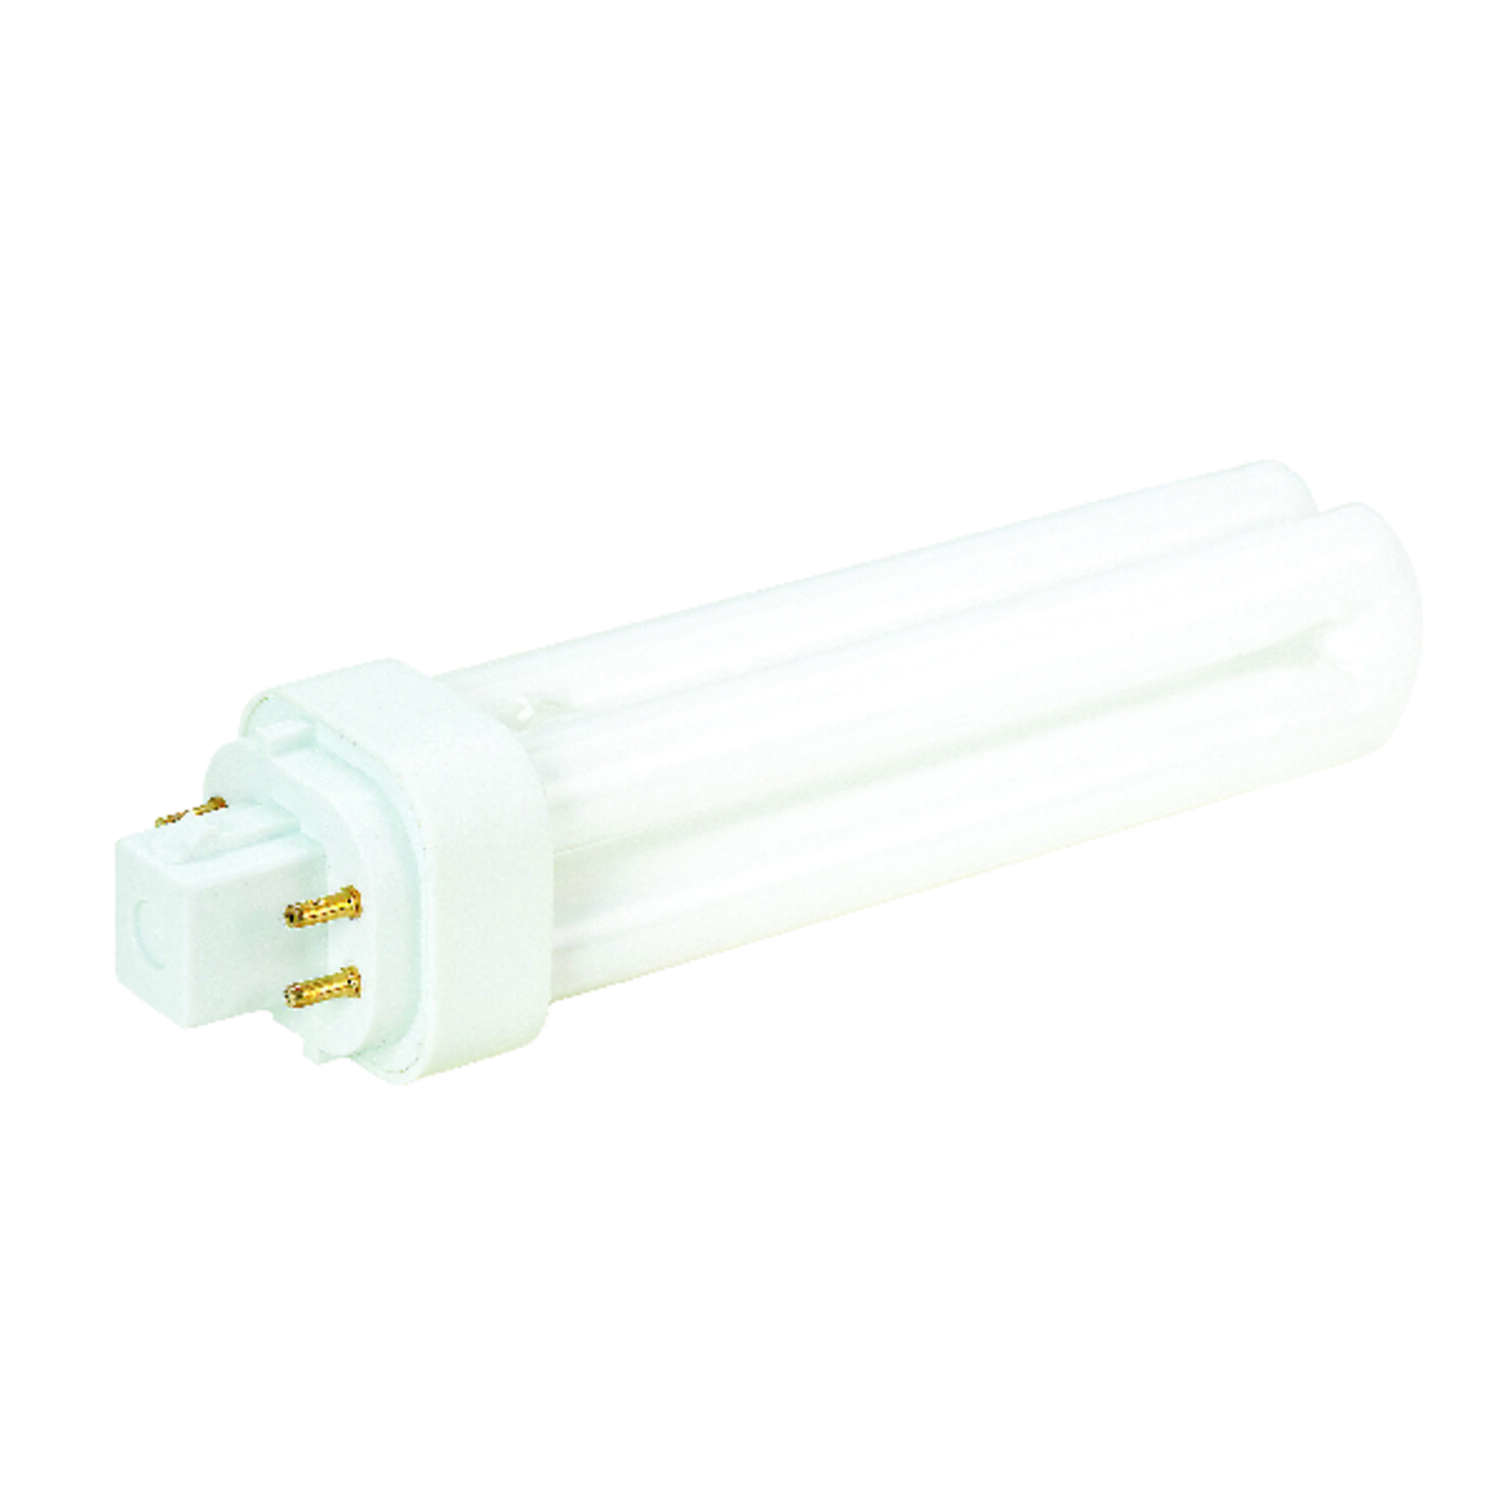 Westinghouse 18 watt DTT 5.81 in. L Fluorescent Bulb Cool White Tubular 3500 K 1 pk